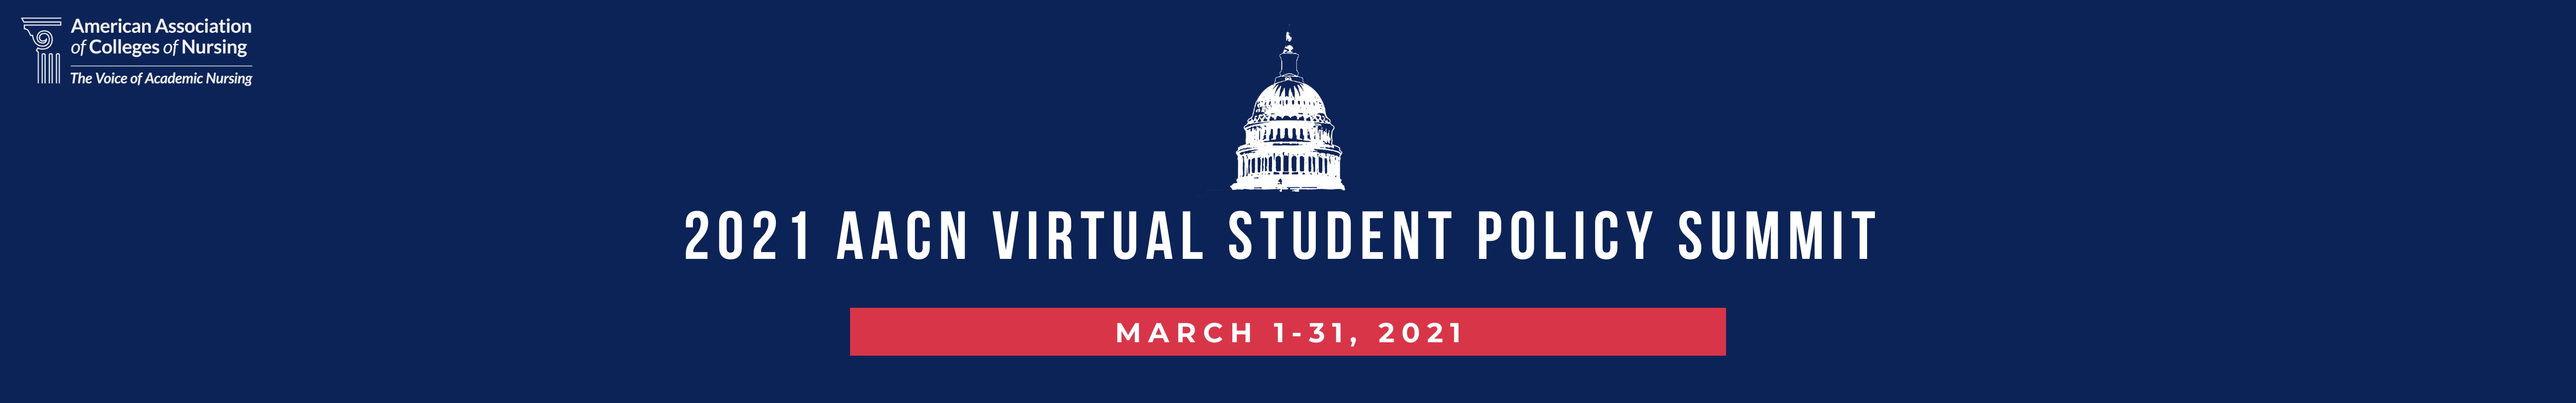 2021 AACN Virtual Student Policy Summit. March 1-31, 2021. The AACN logo is in top-left corner.